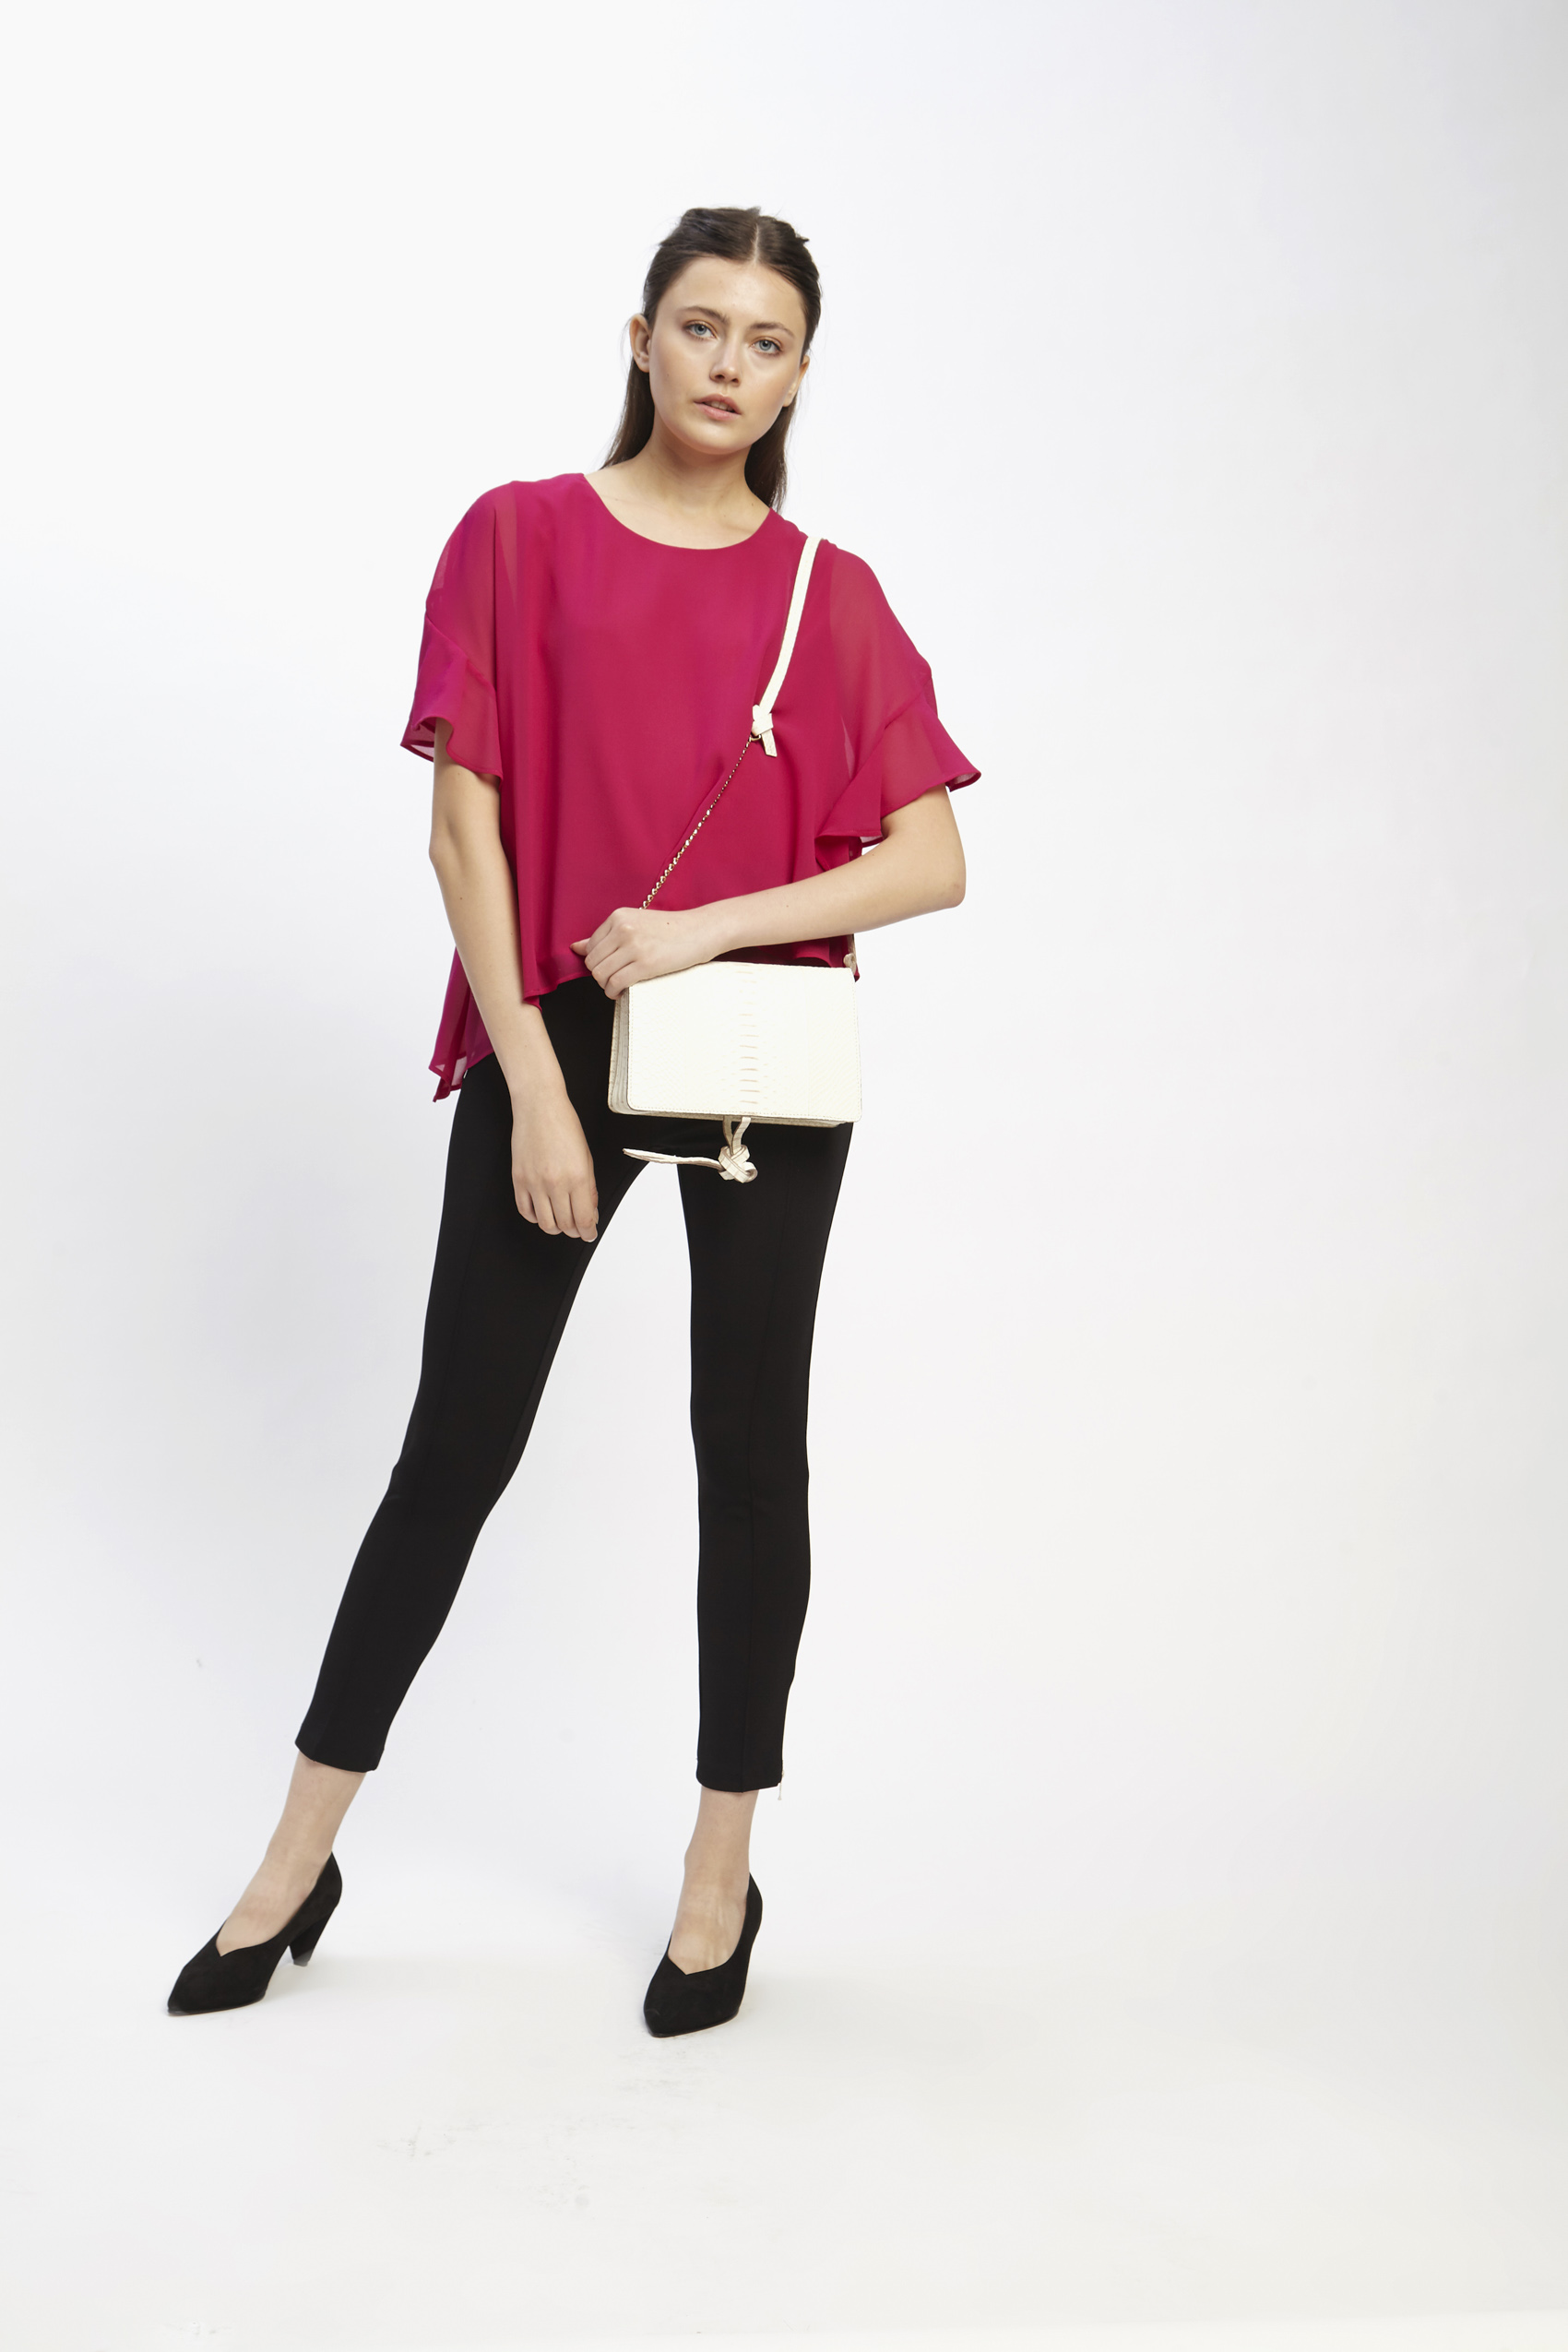 awada_blusa-candy_32-25-2019__picture-1884